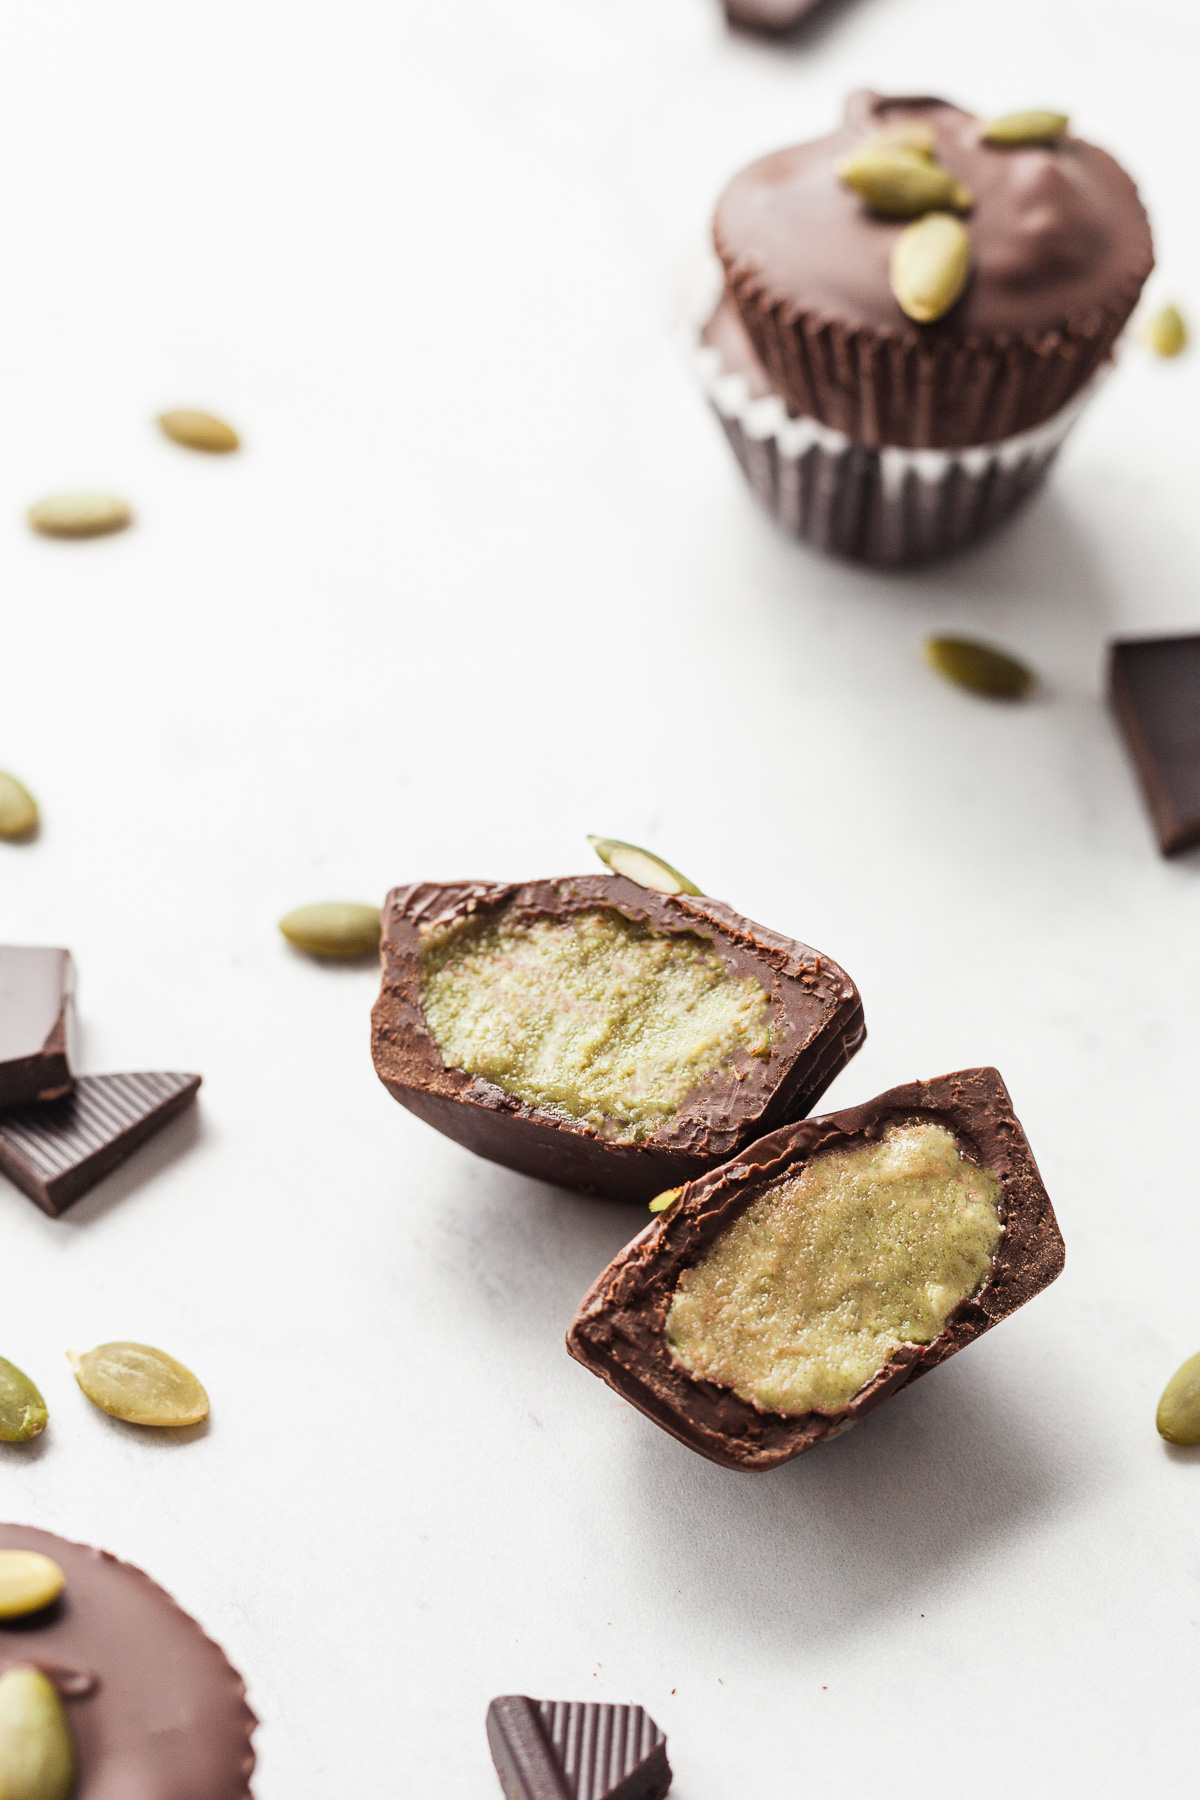 a pumpkin seed butter cup cut open showing the green inside surrounded by pumpkin seeds